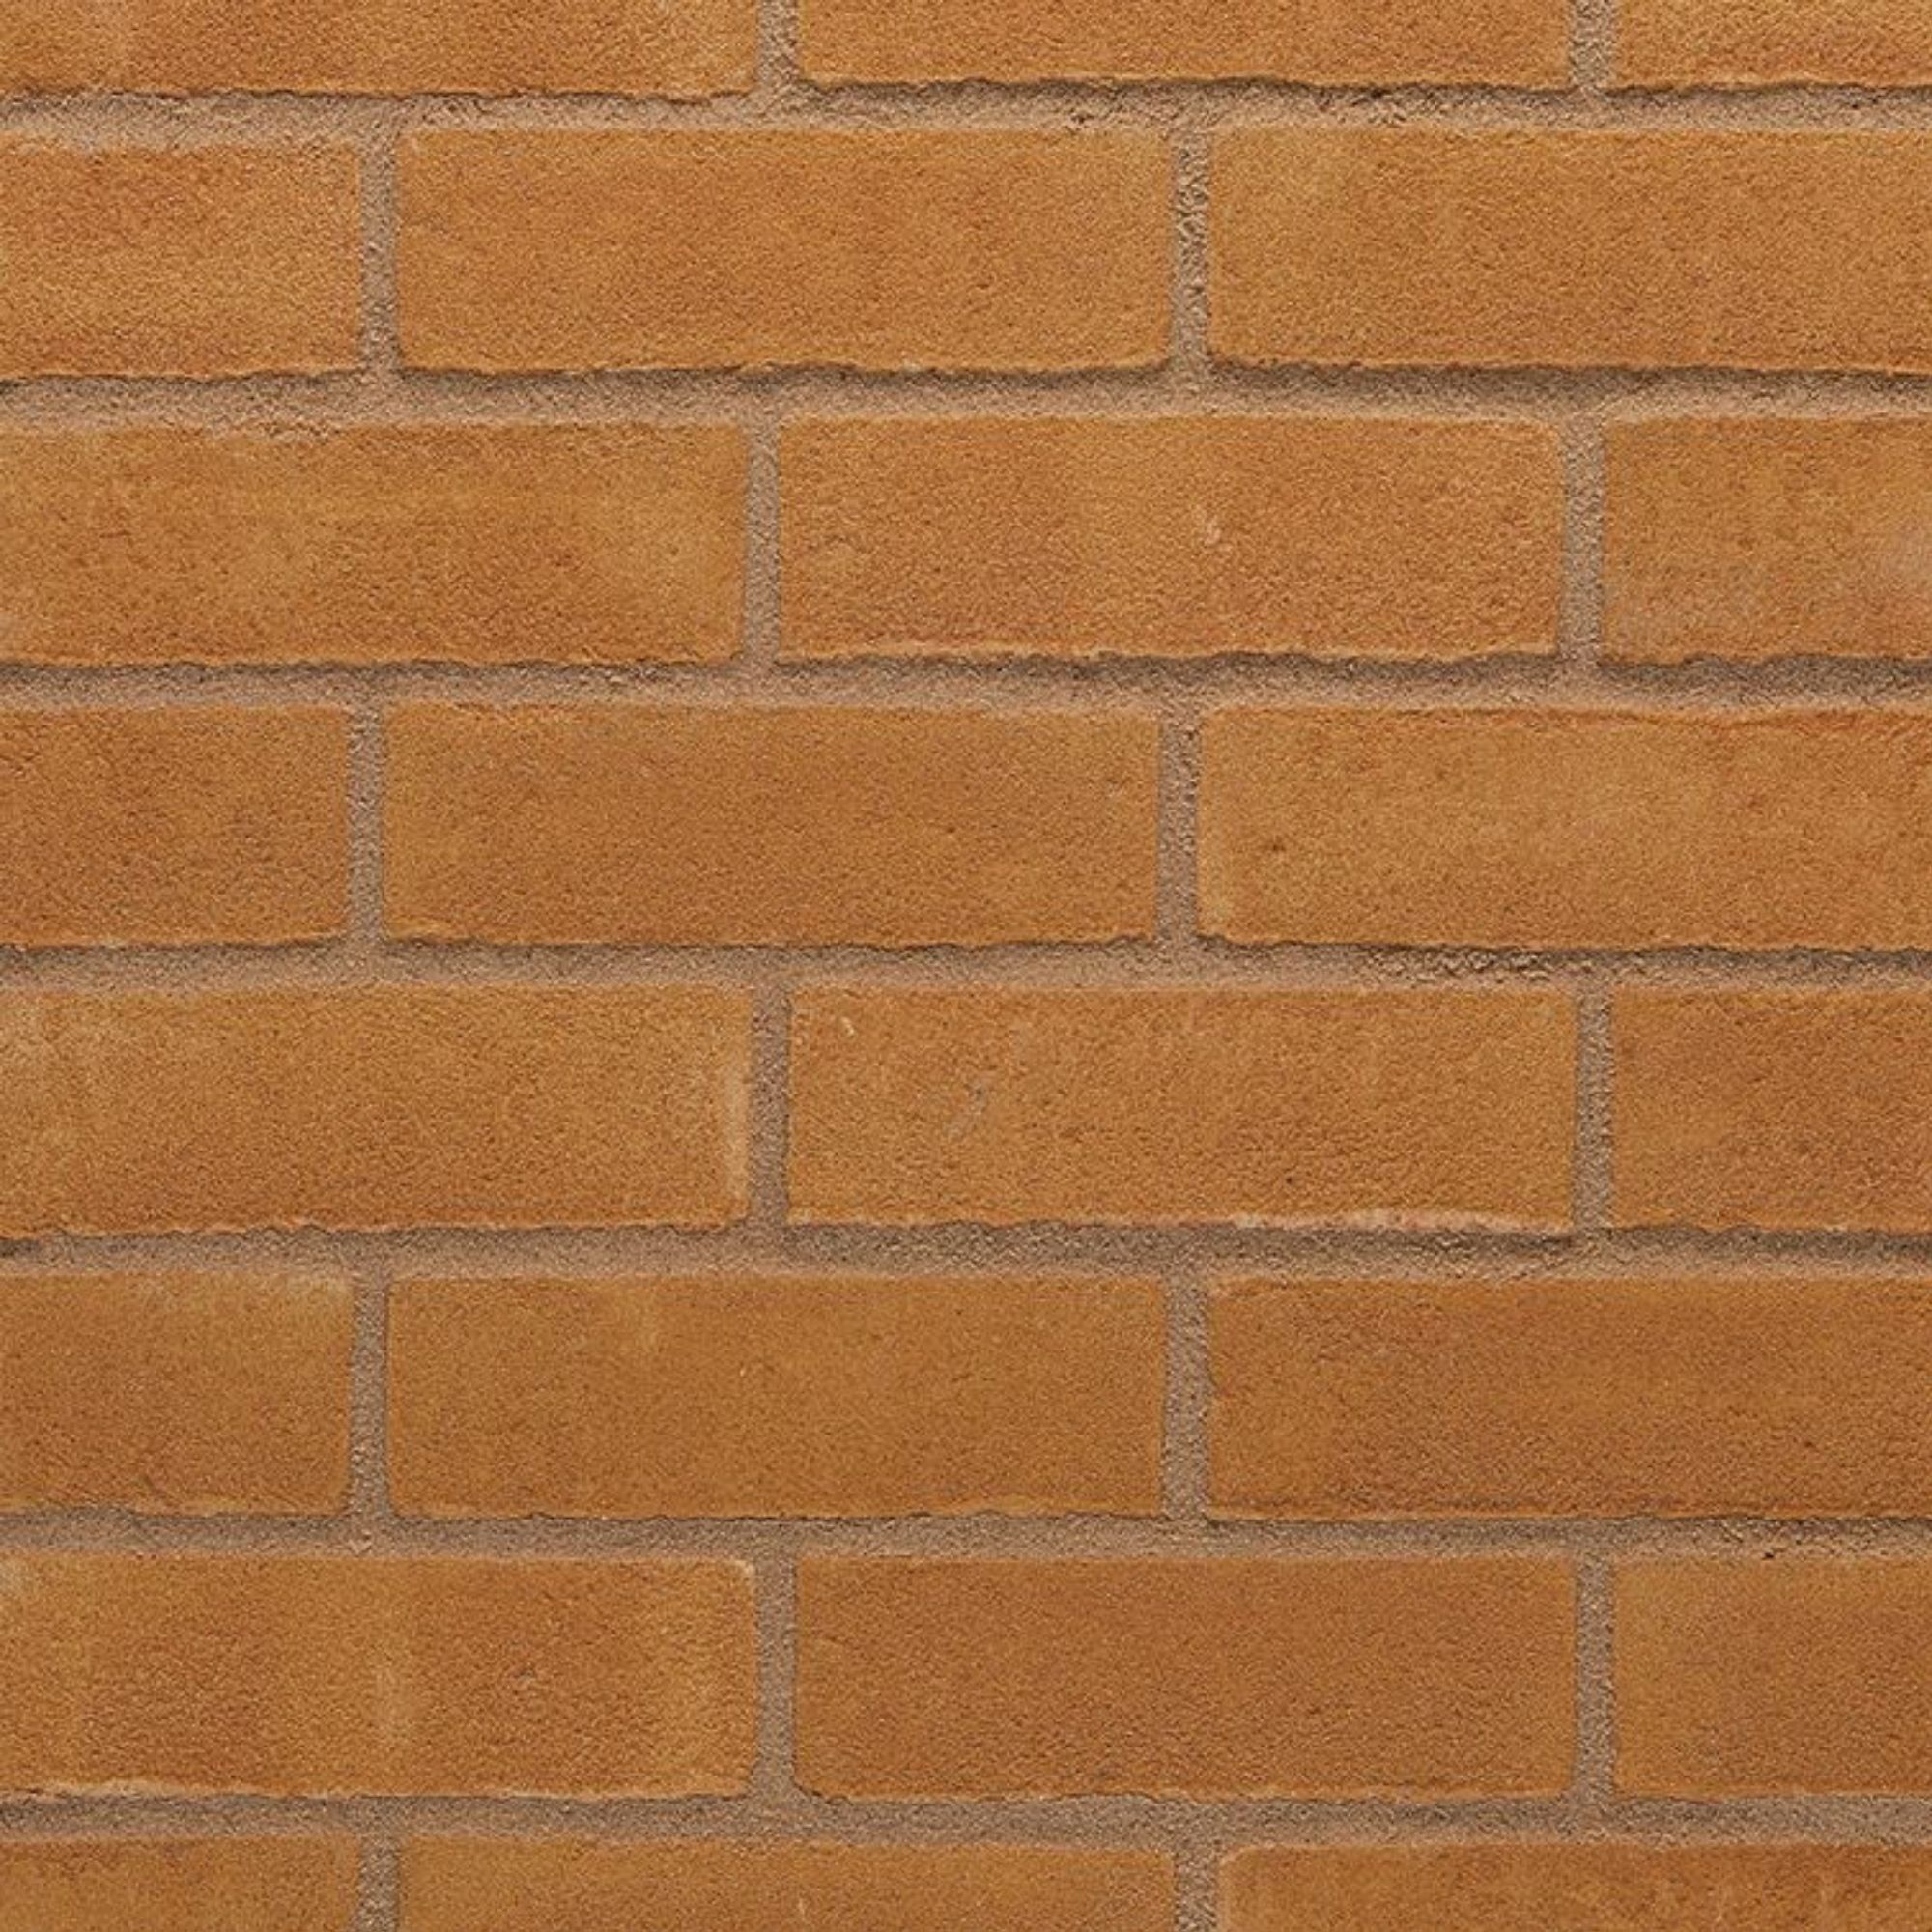 Wienerberger Yellow Facing Brick L 215mm W 102 5mm H